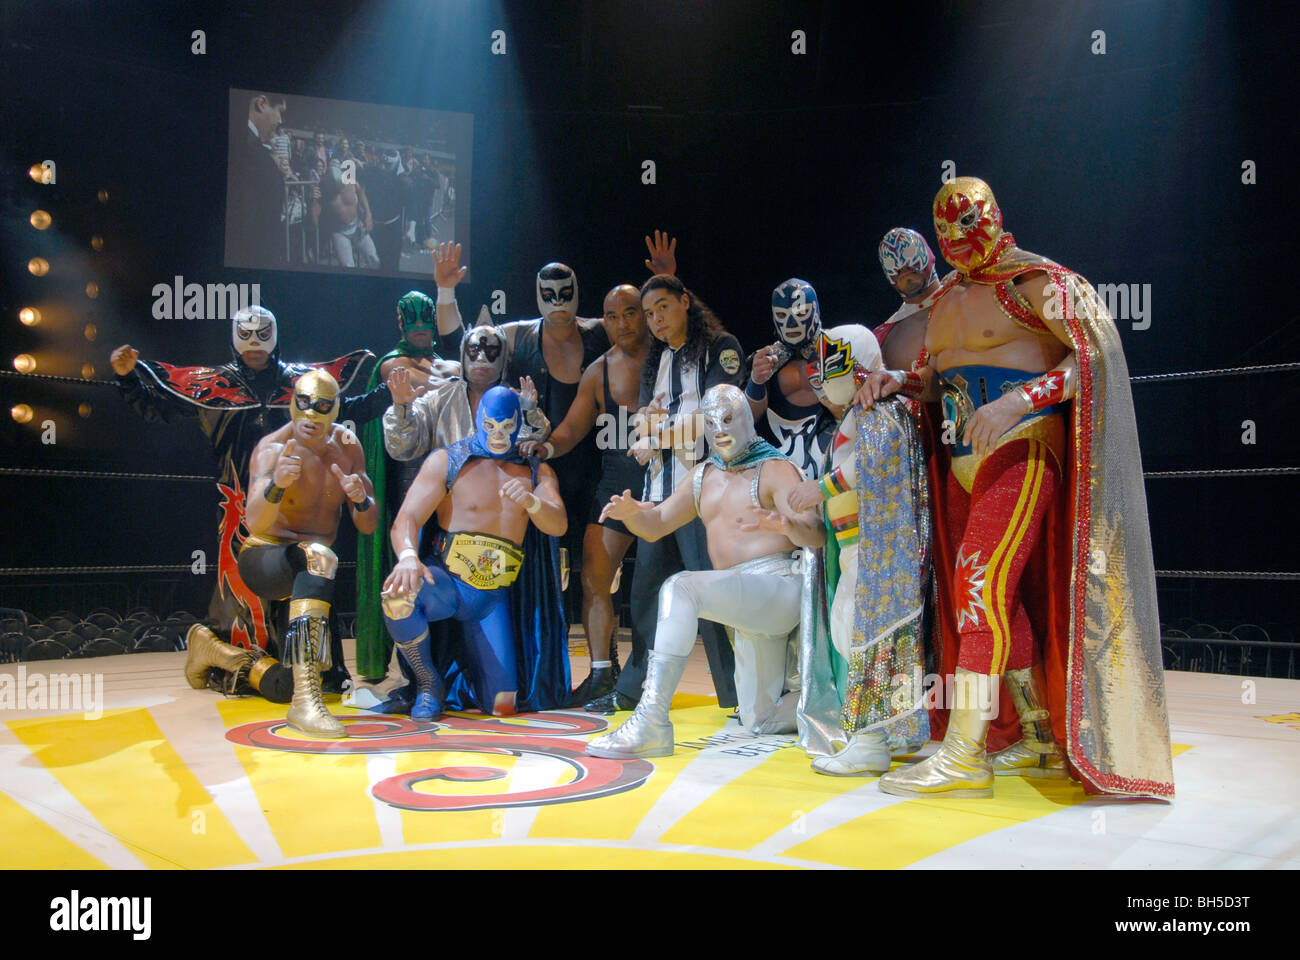 Mexican cult wrestlers Lucha Libre in Mexico City - Stock Image